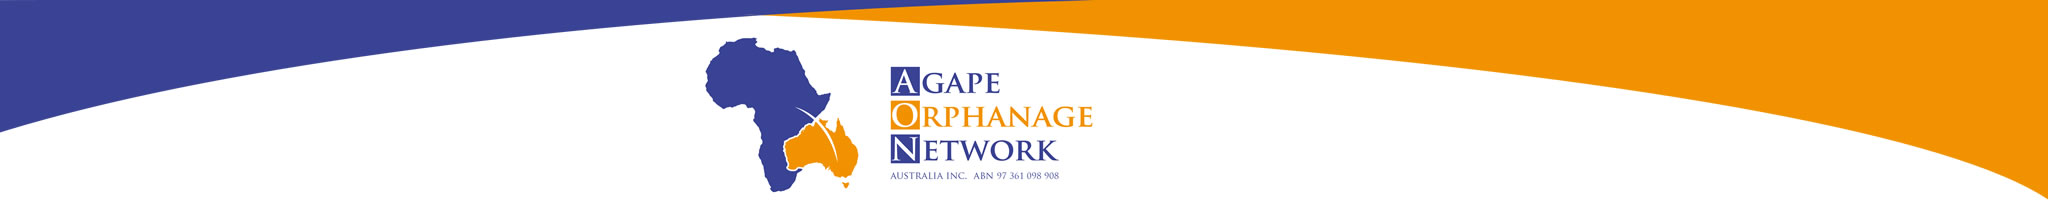 Agape Orphanage Network - Australia